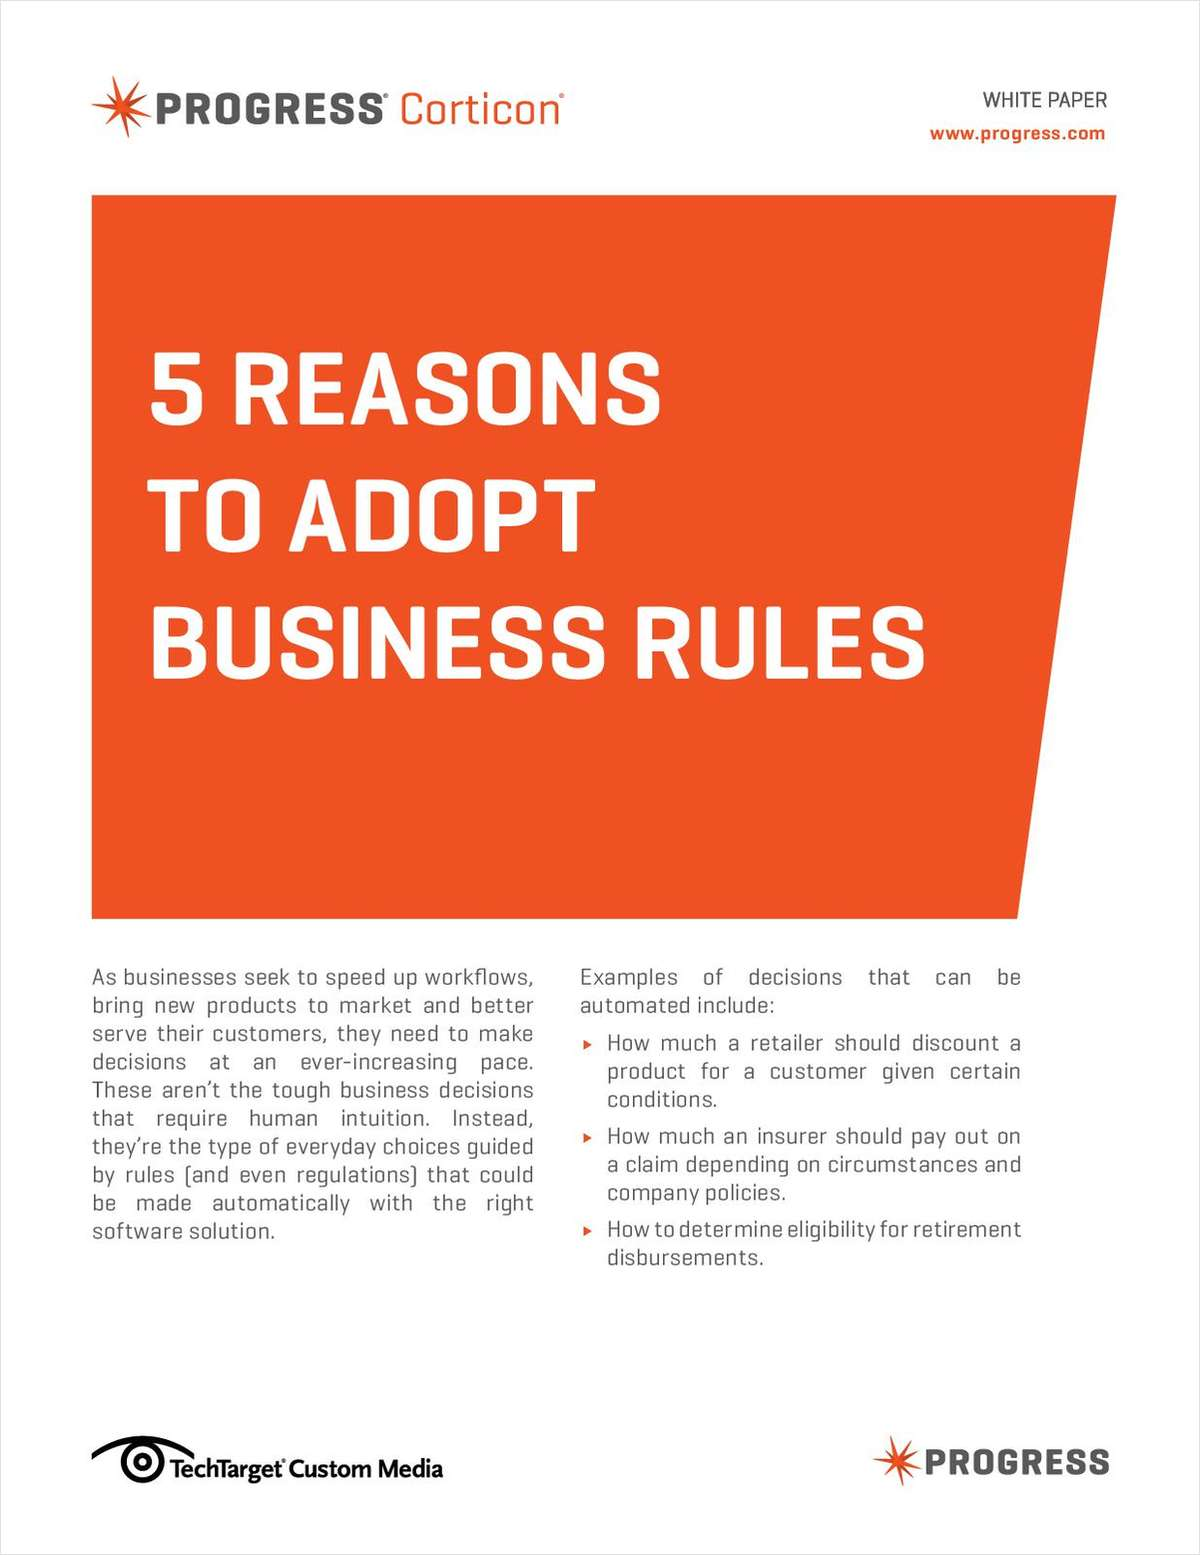 5 Reasons to Adopt Business Rules